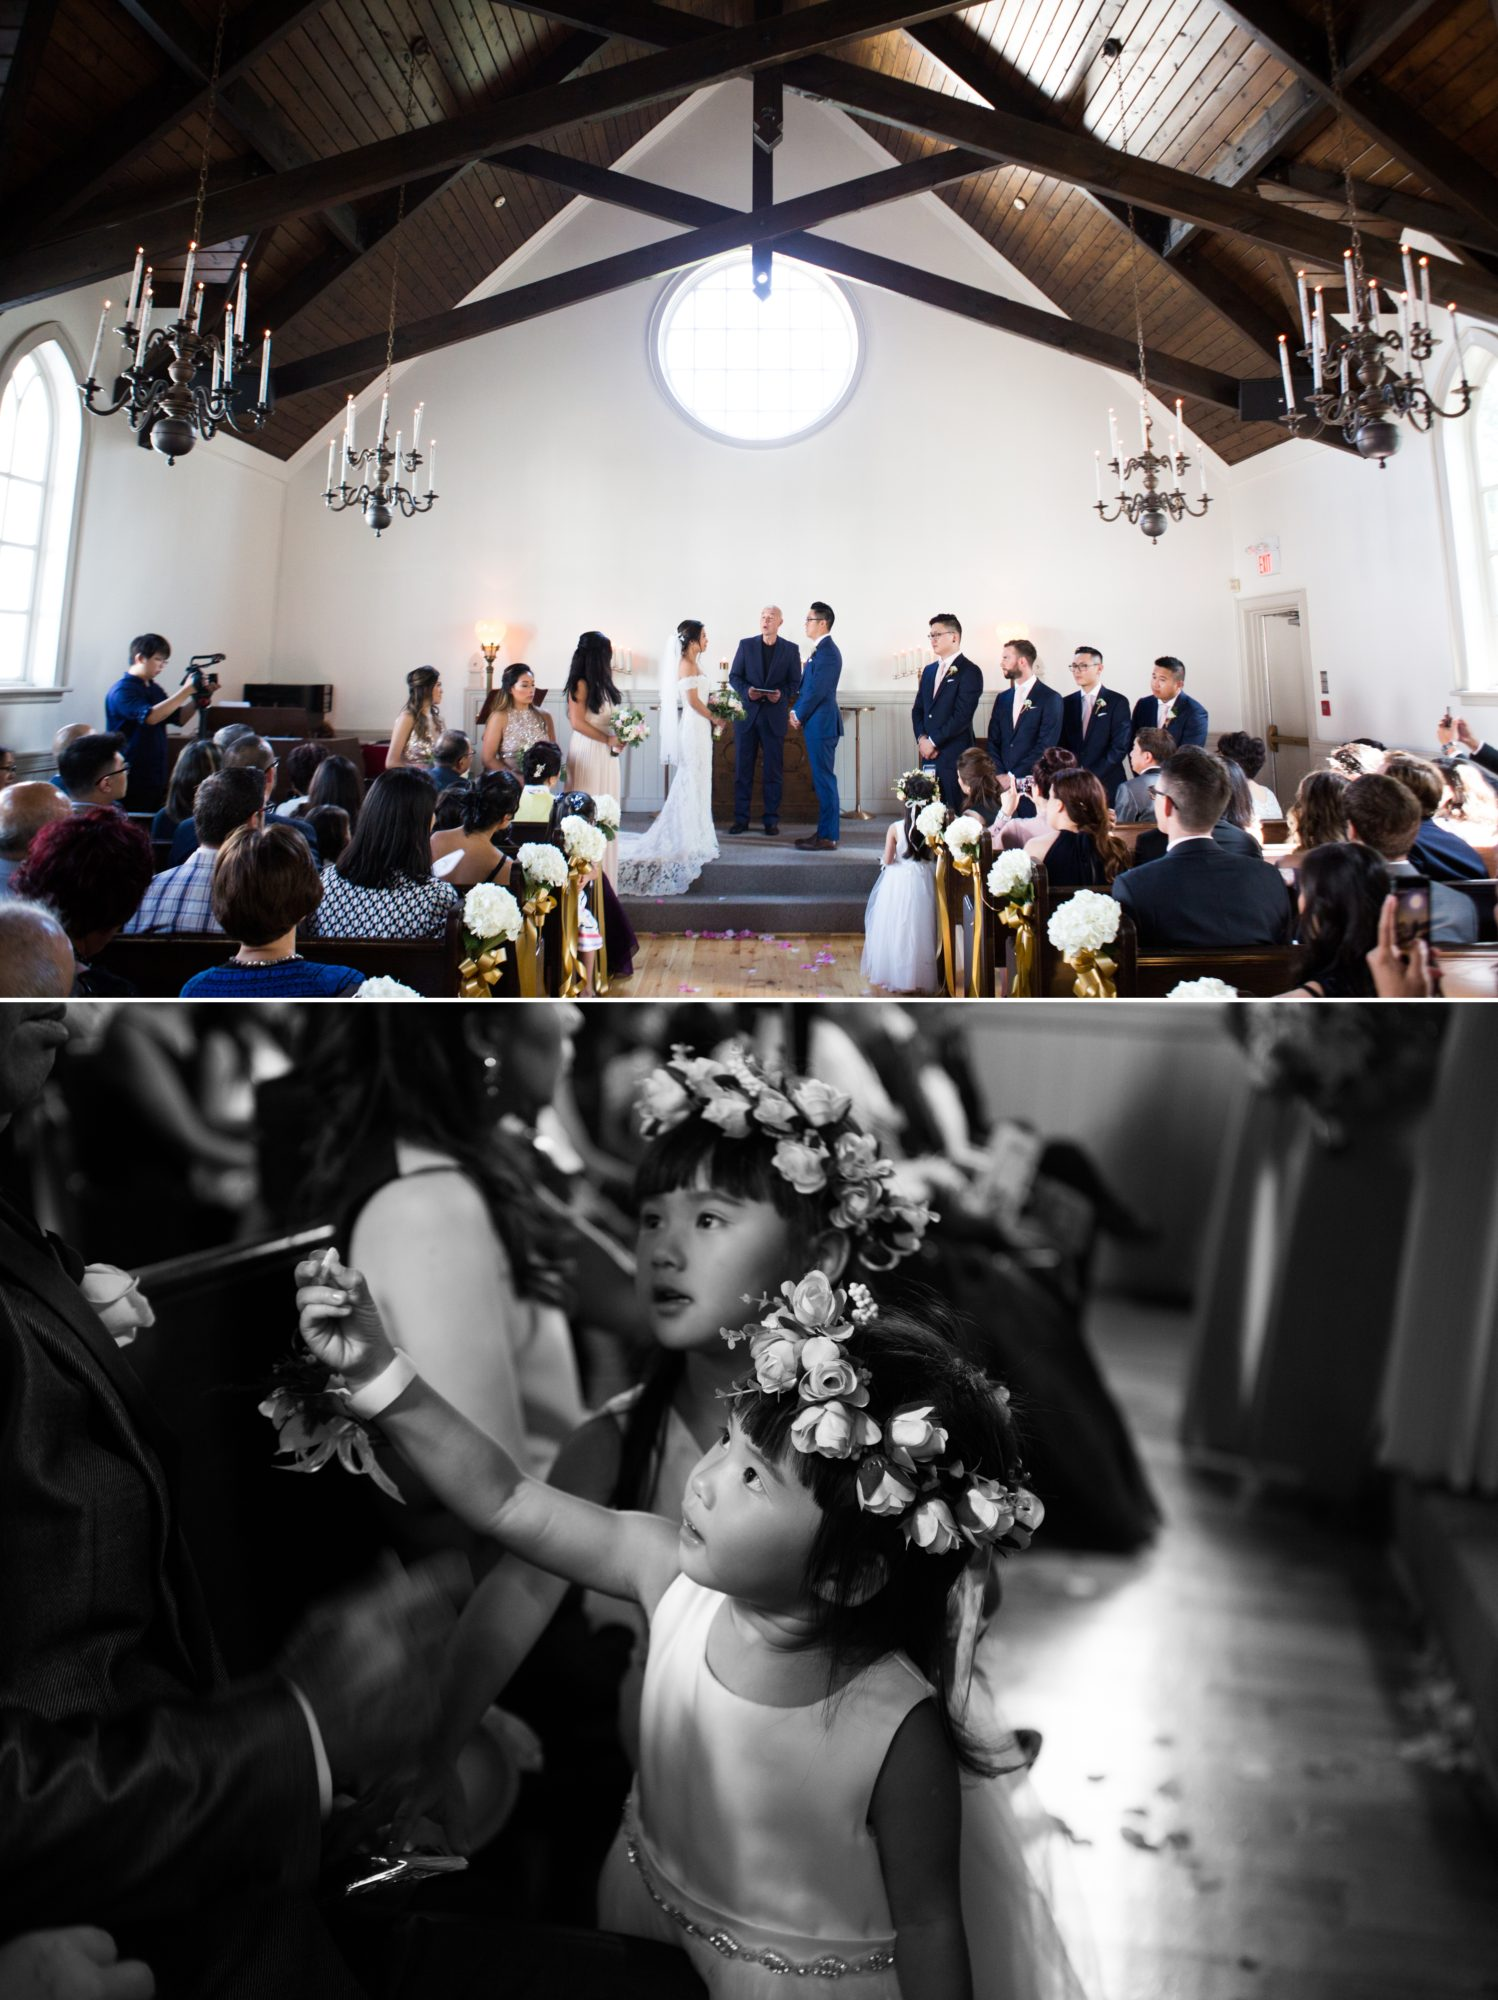 Flower Girls Ceremony Toronto Chinese Korean Wedding Zsuzsi Pal Photography